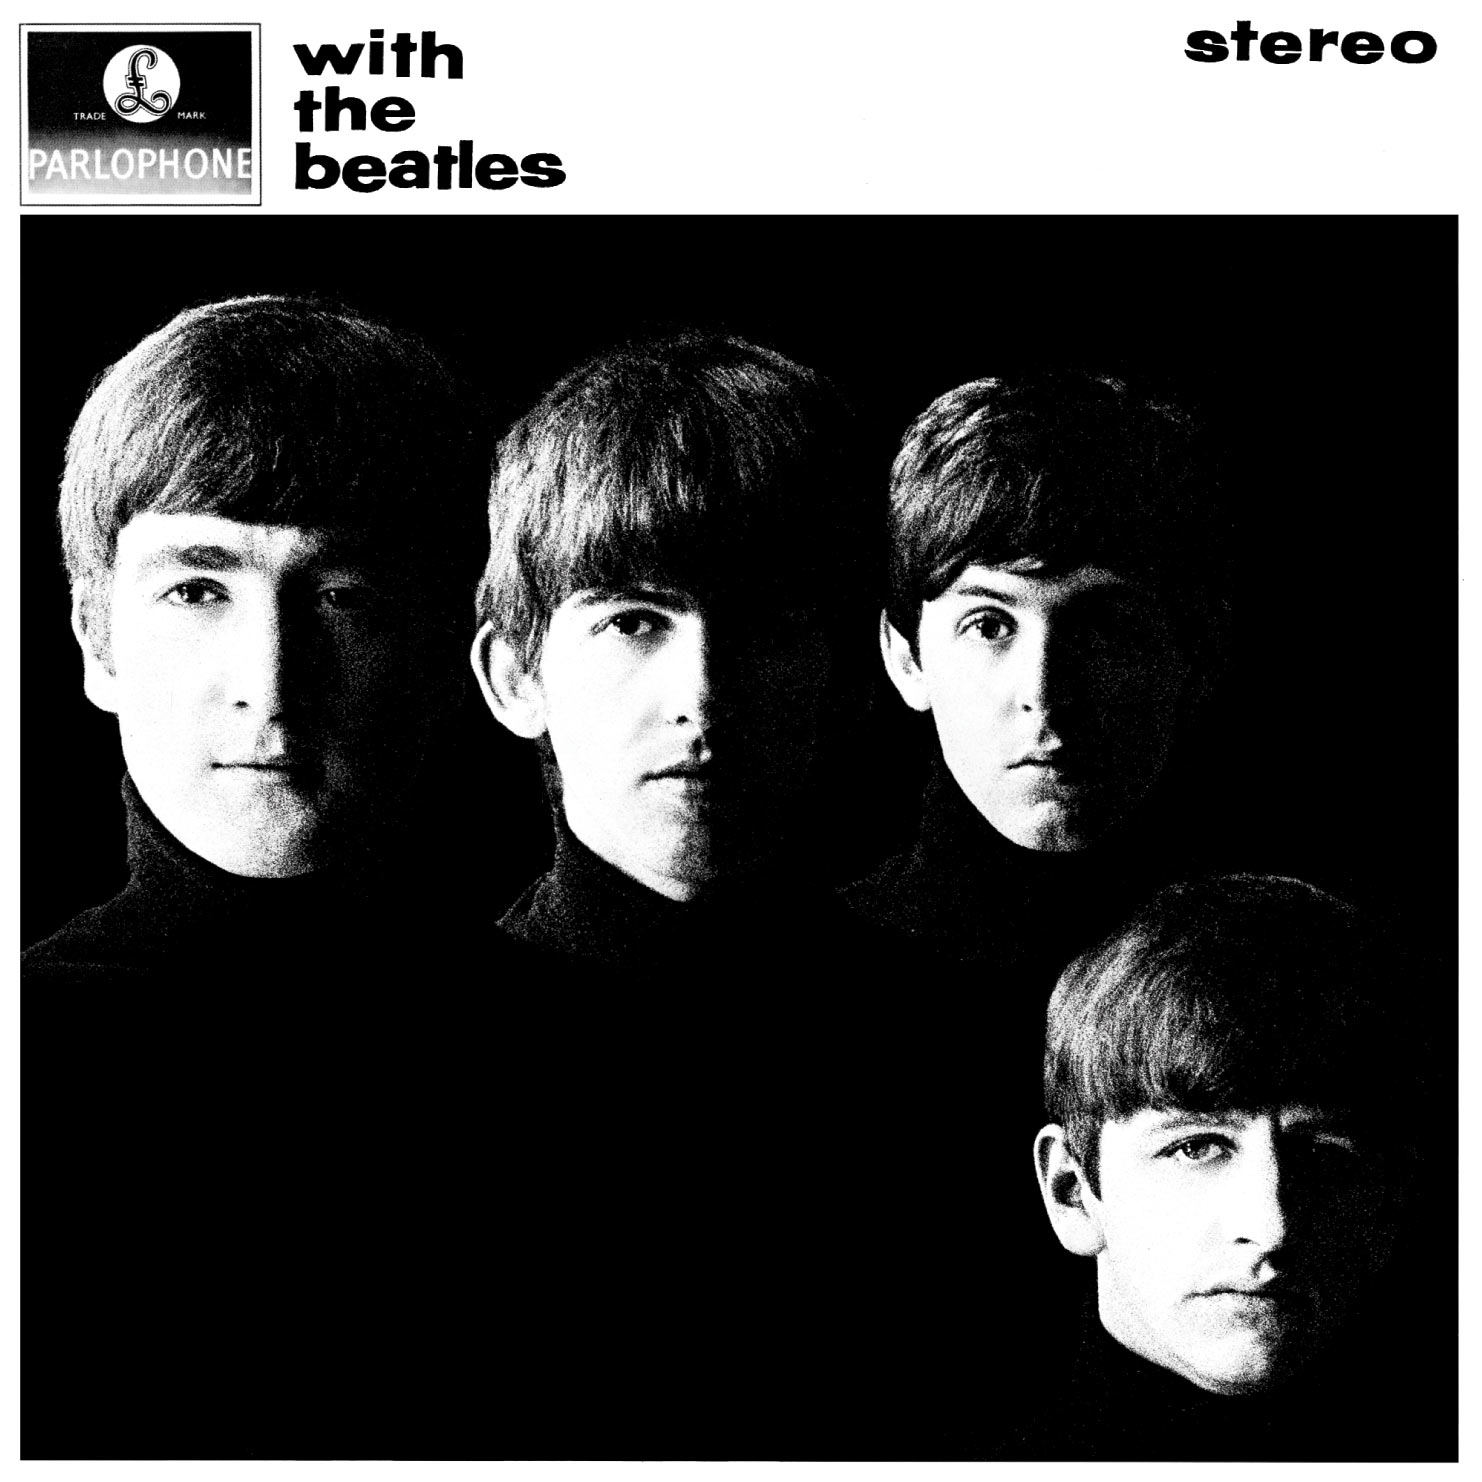 The Beatles - With The Beatles (November 22, 1963 - Parlophone UK)